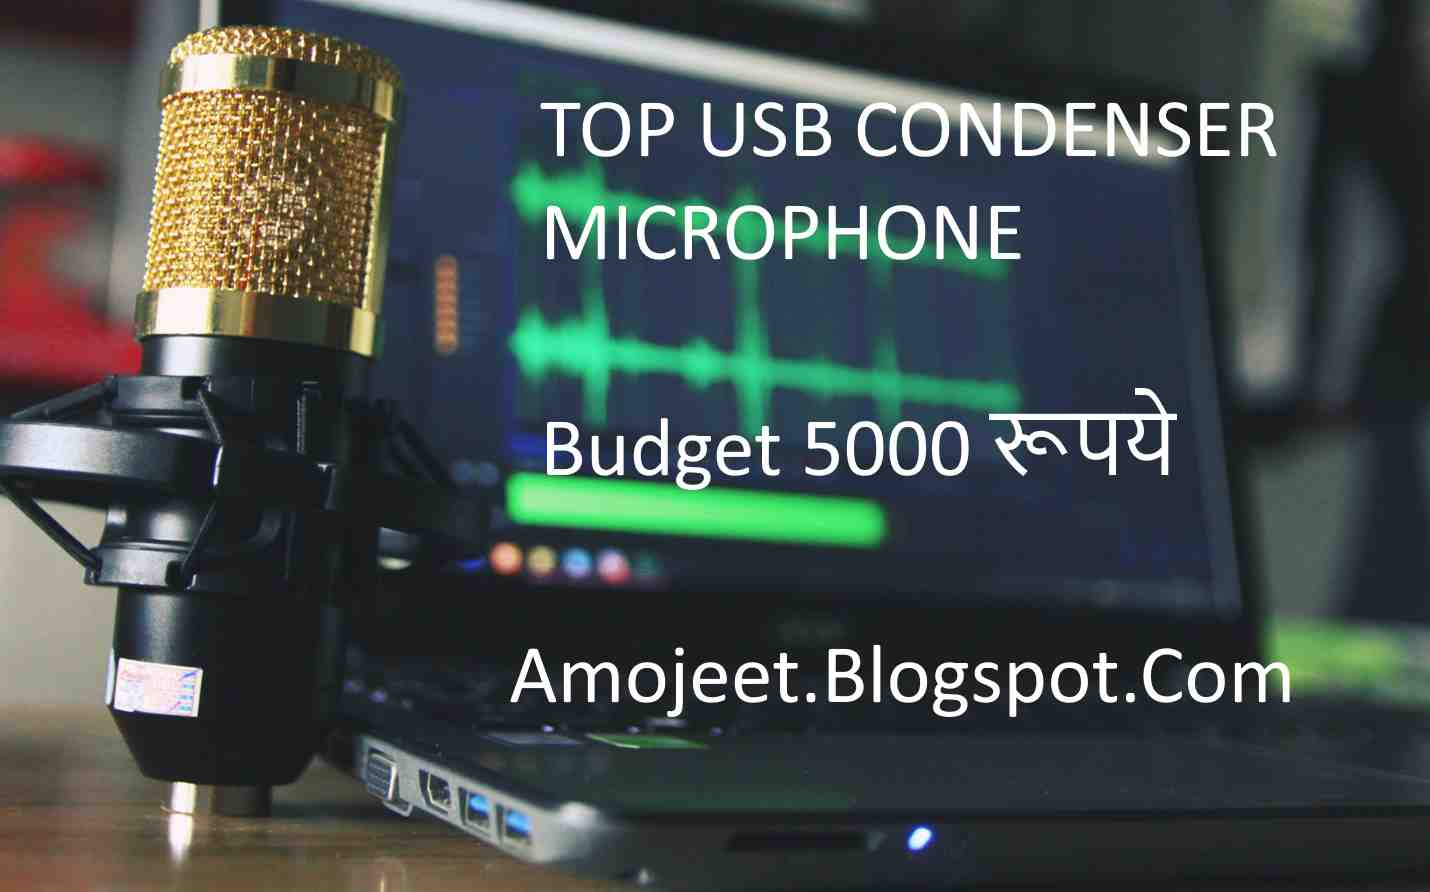 Best-USB-Condenser-Microphone-List-in-India -under-5000-rupee-budget